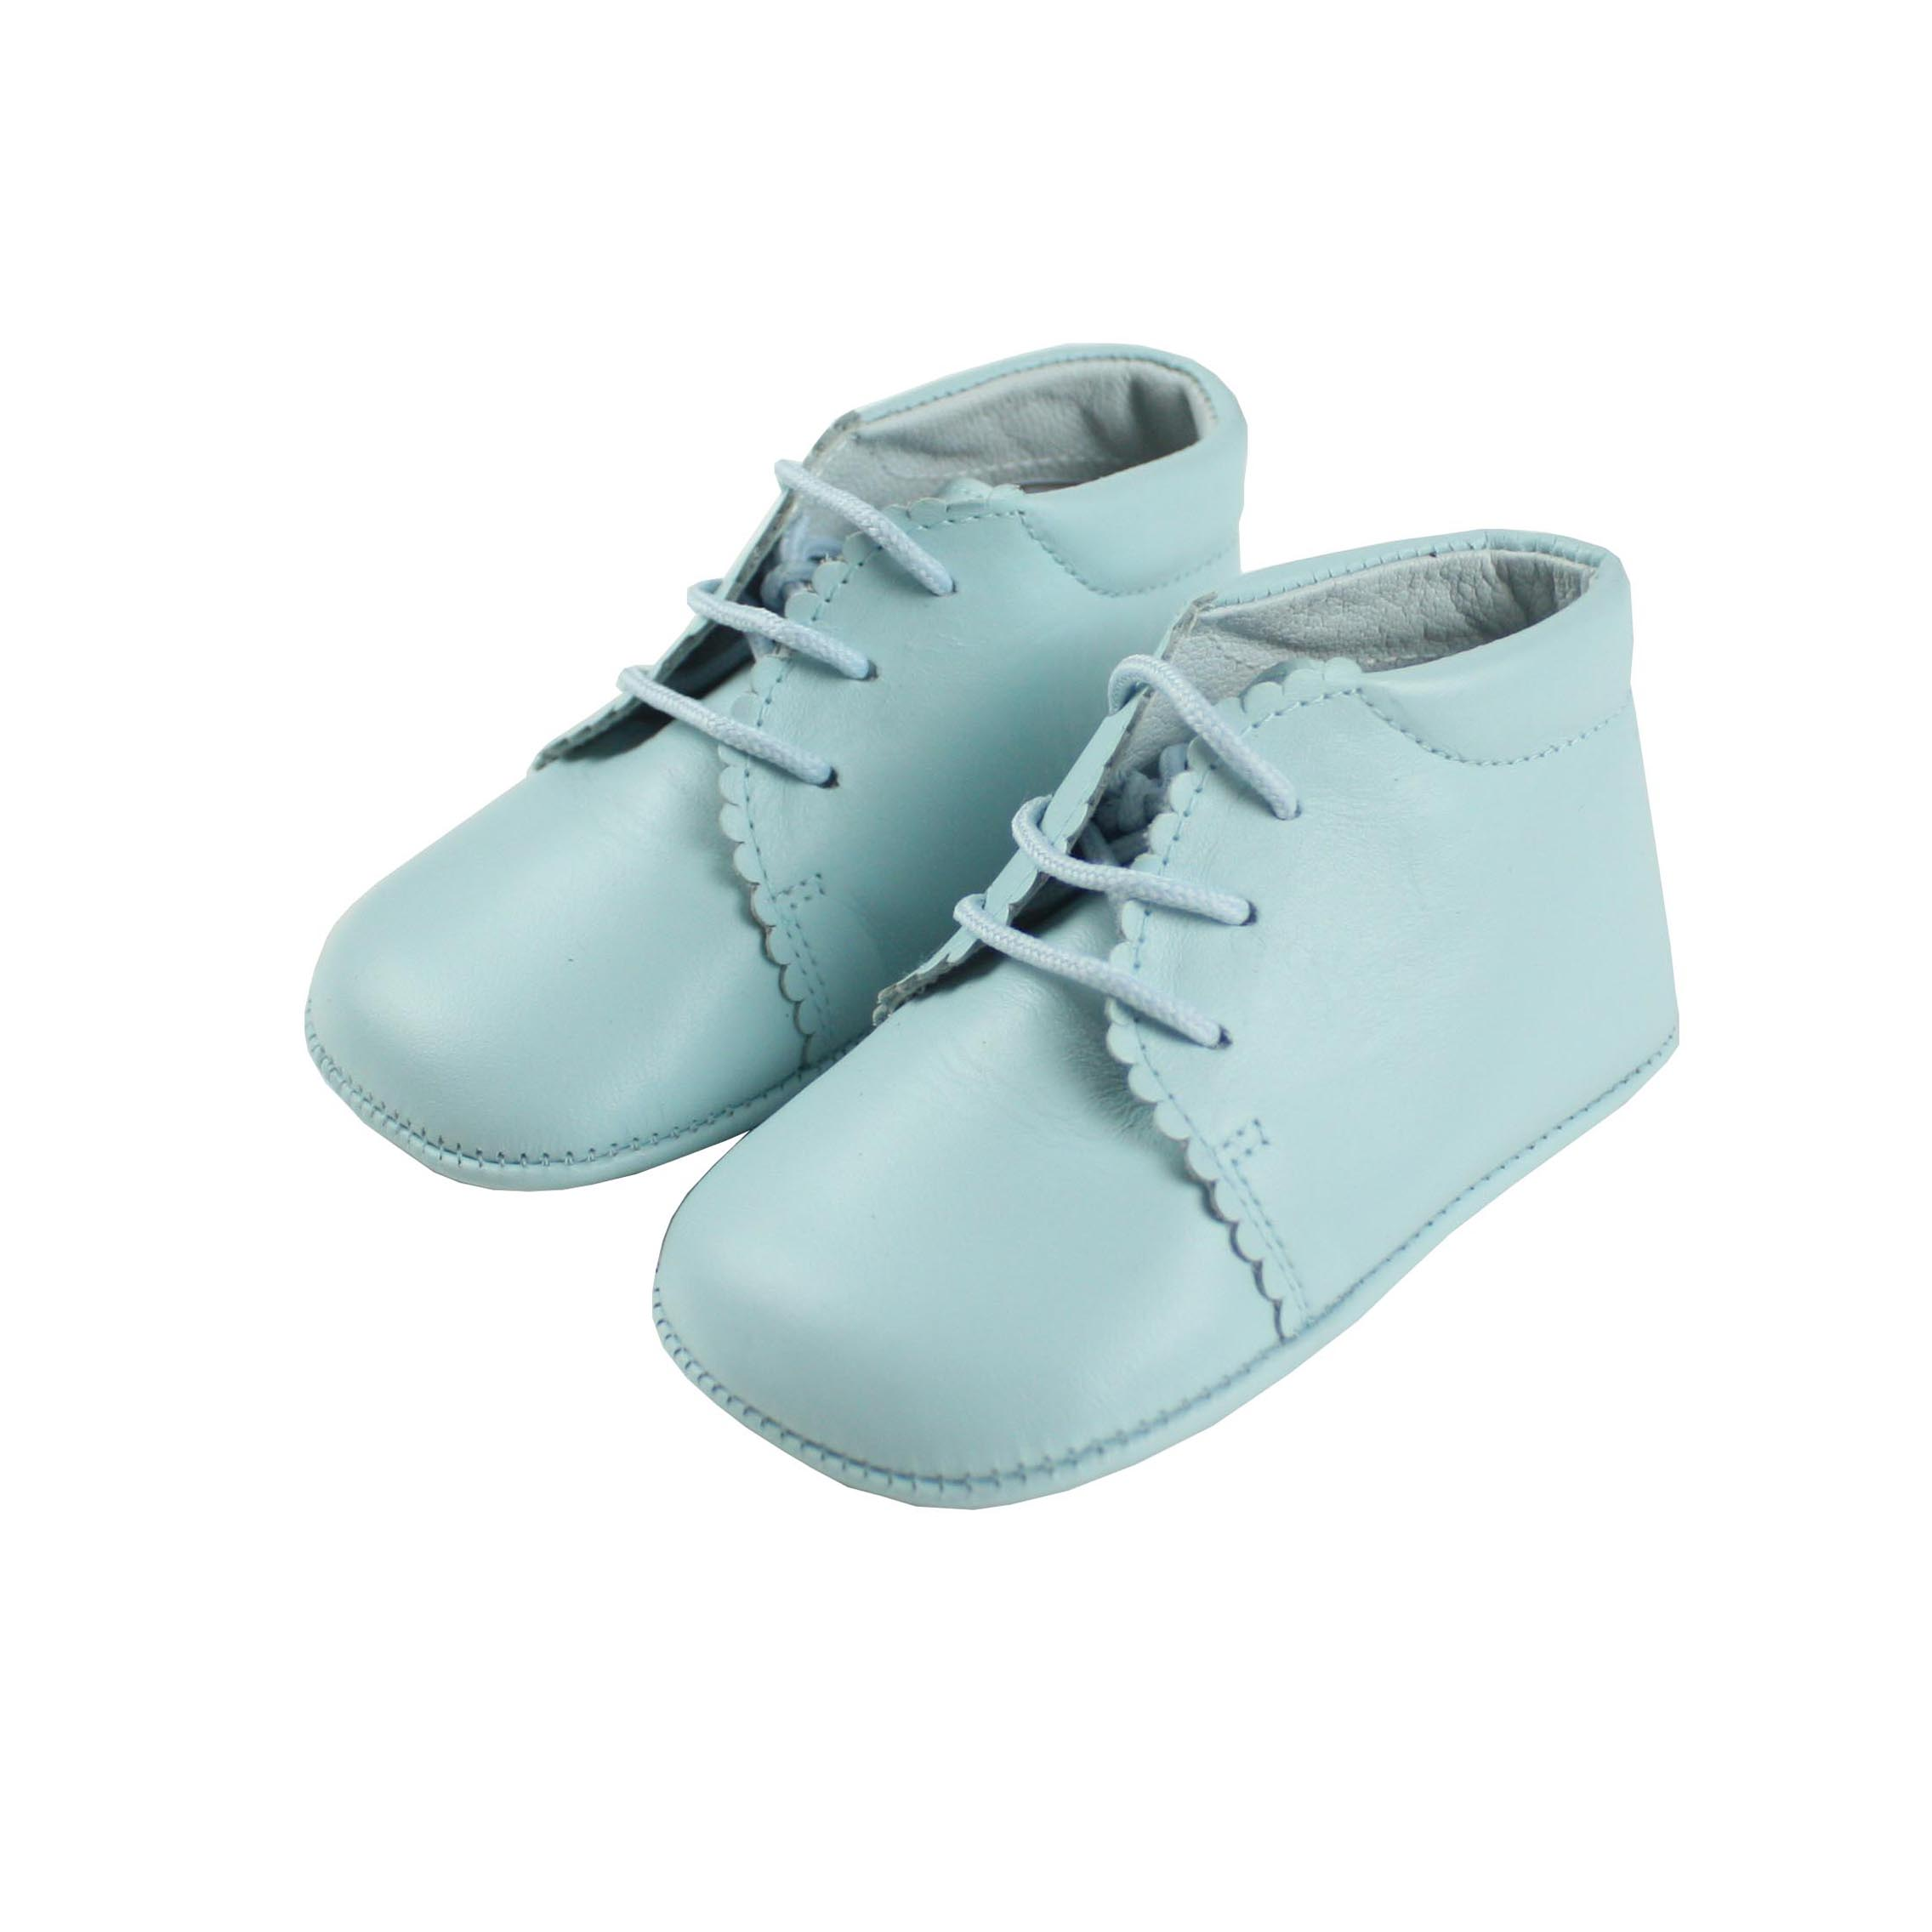 Baby pastel blue baby boots